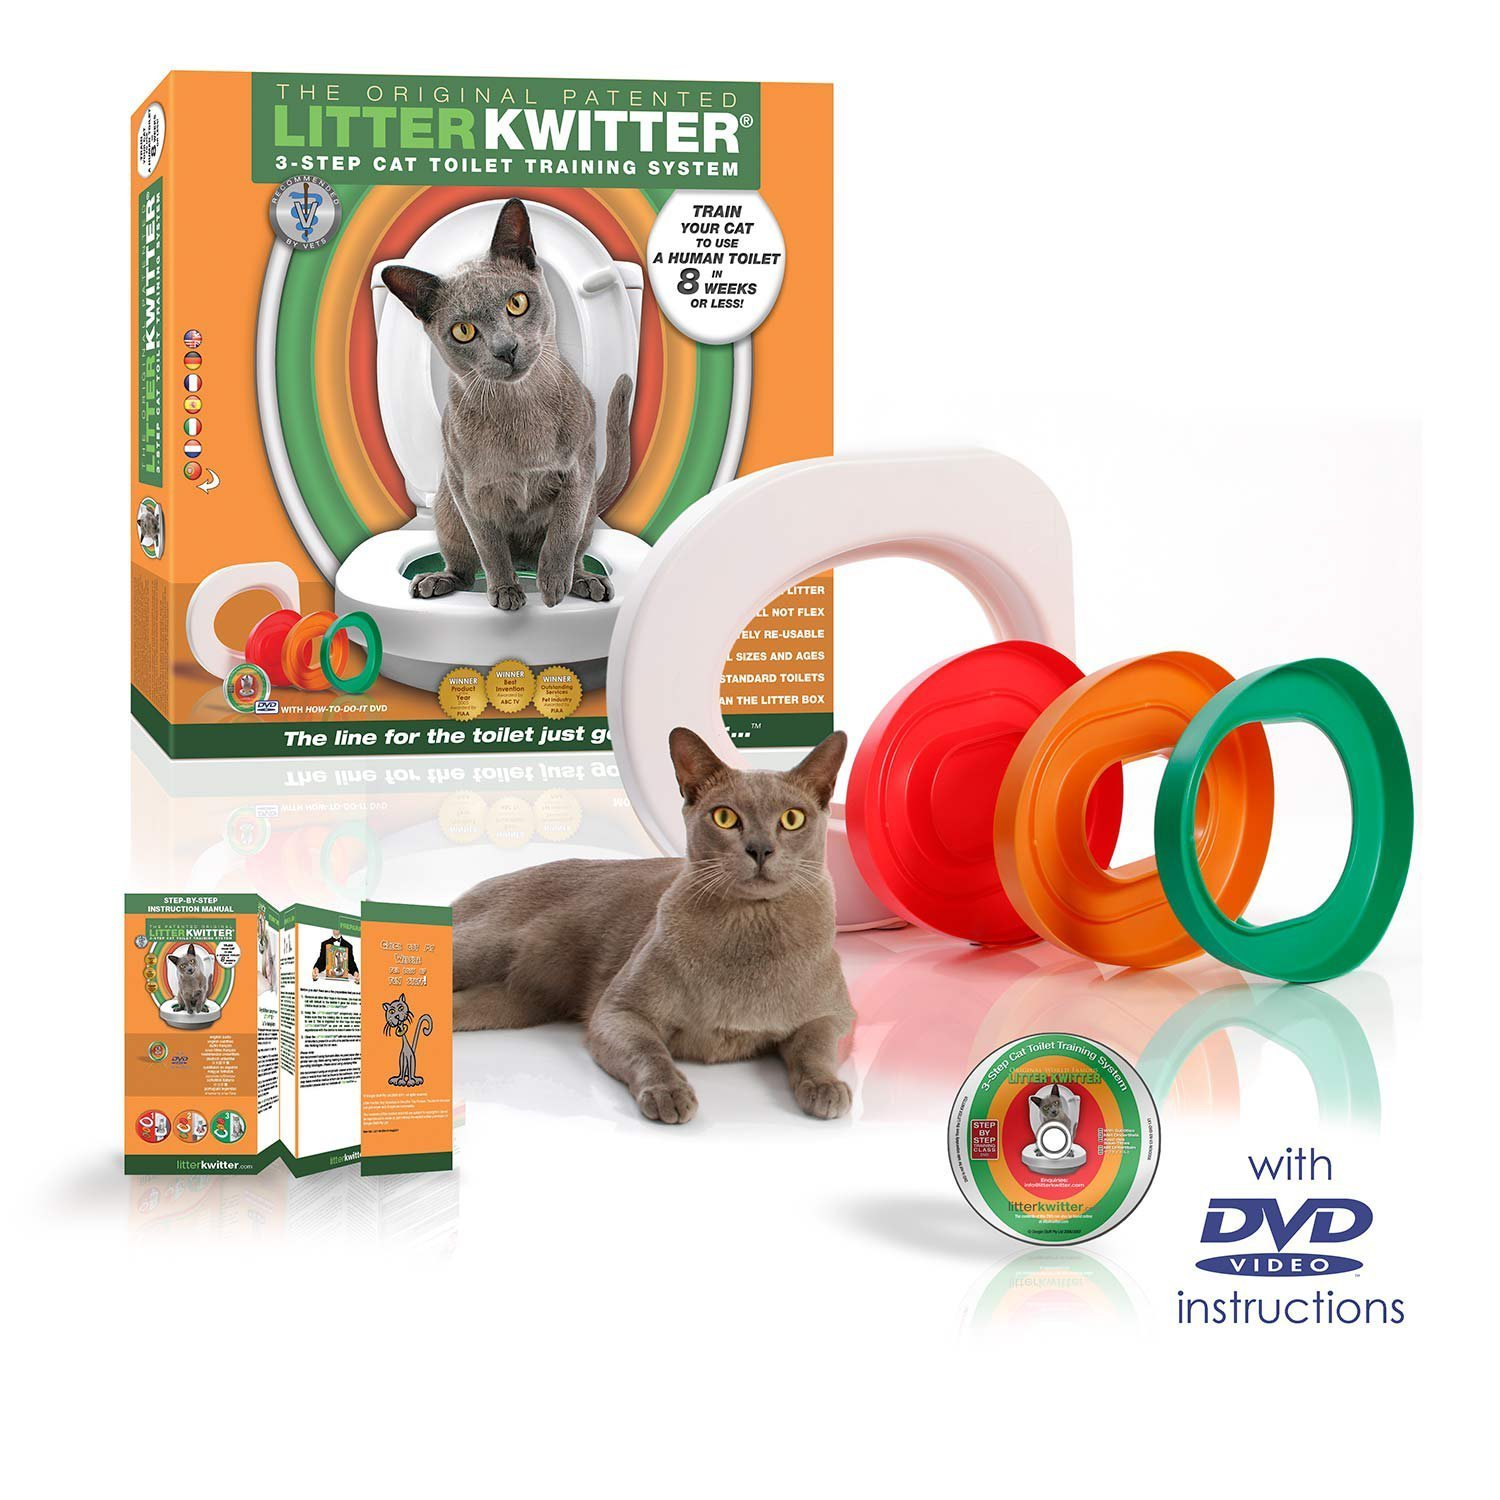 Cat Toilet Training System By Litter Kwitter  - With Instructional DVD